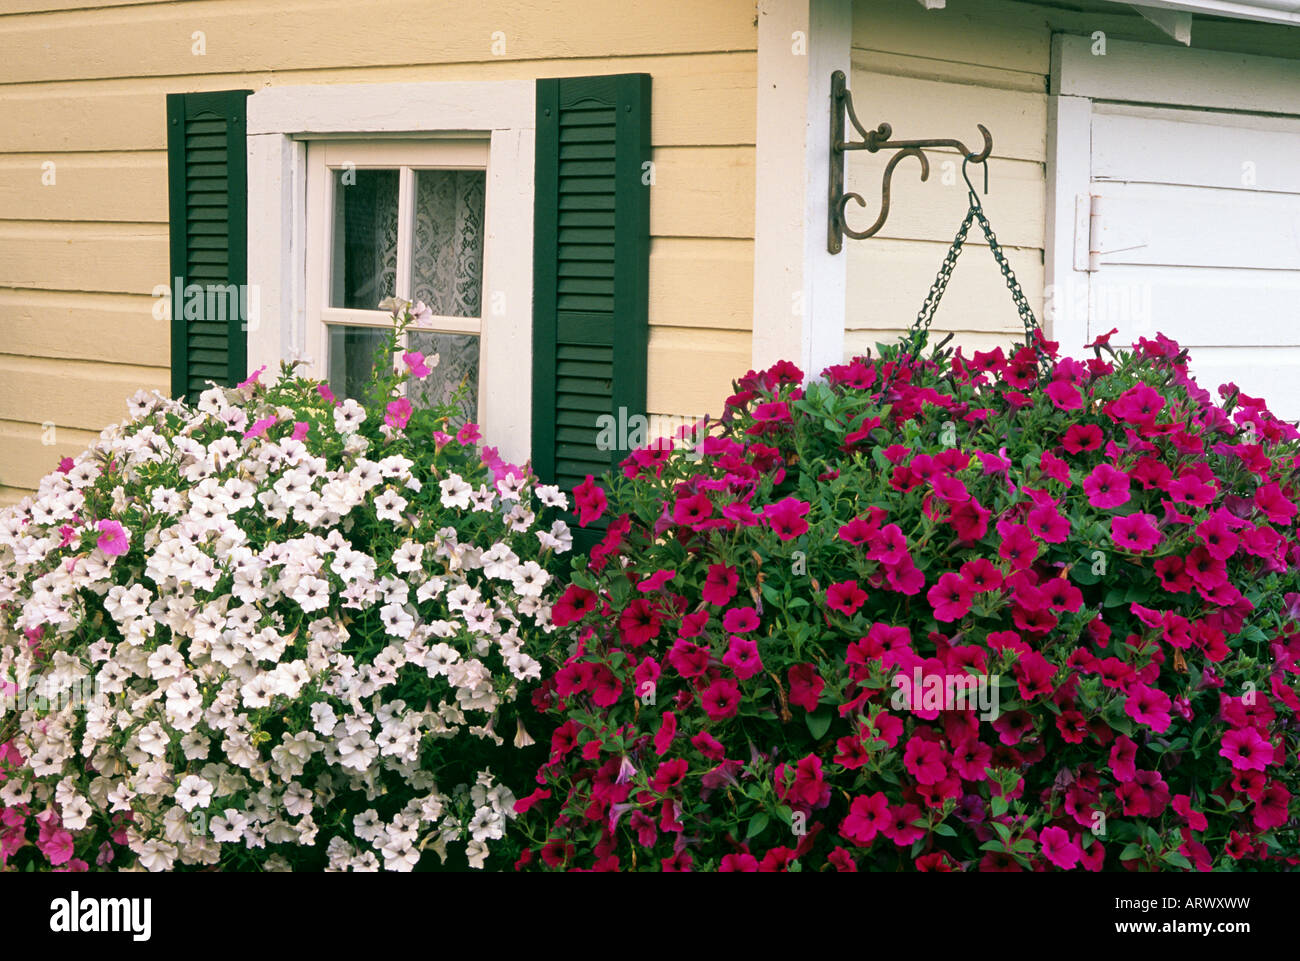 Garden Shed And Hanging Baskets Of Wave And Tidal Wave Petunias In